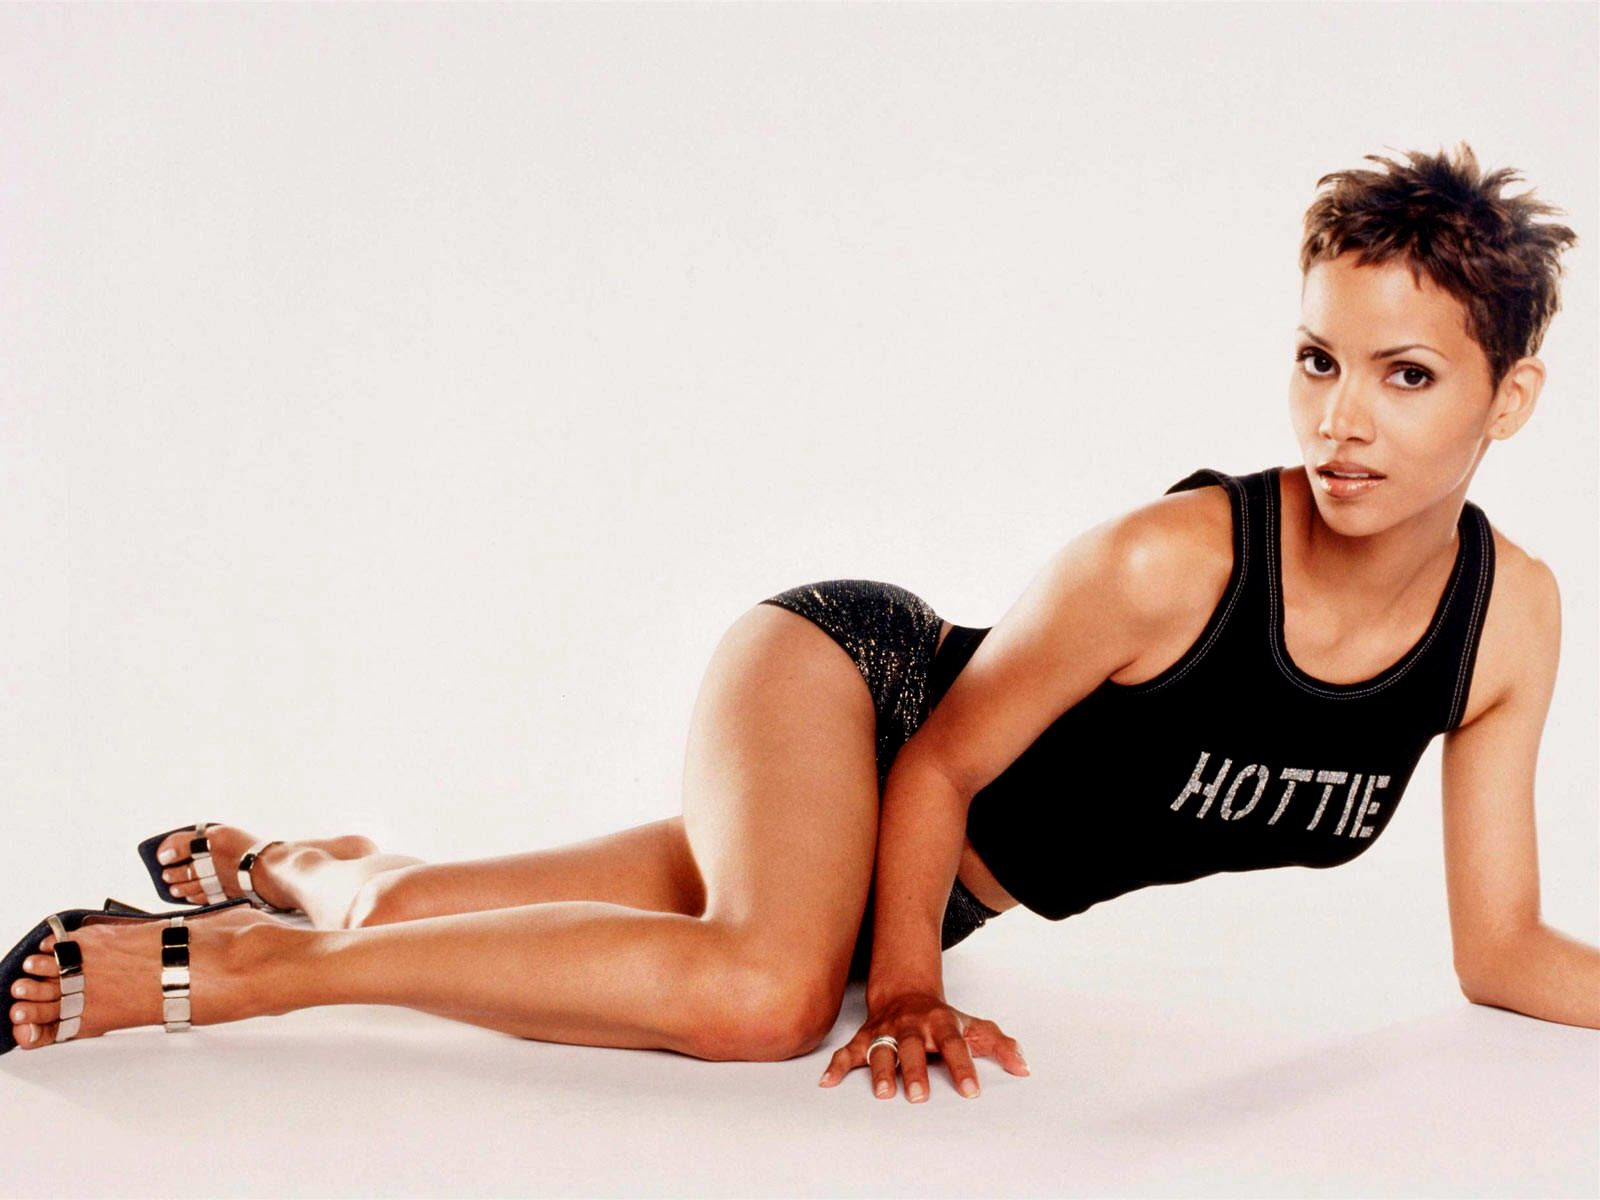 1600x1200 - Halle Berry Wallpapers 11